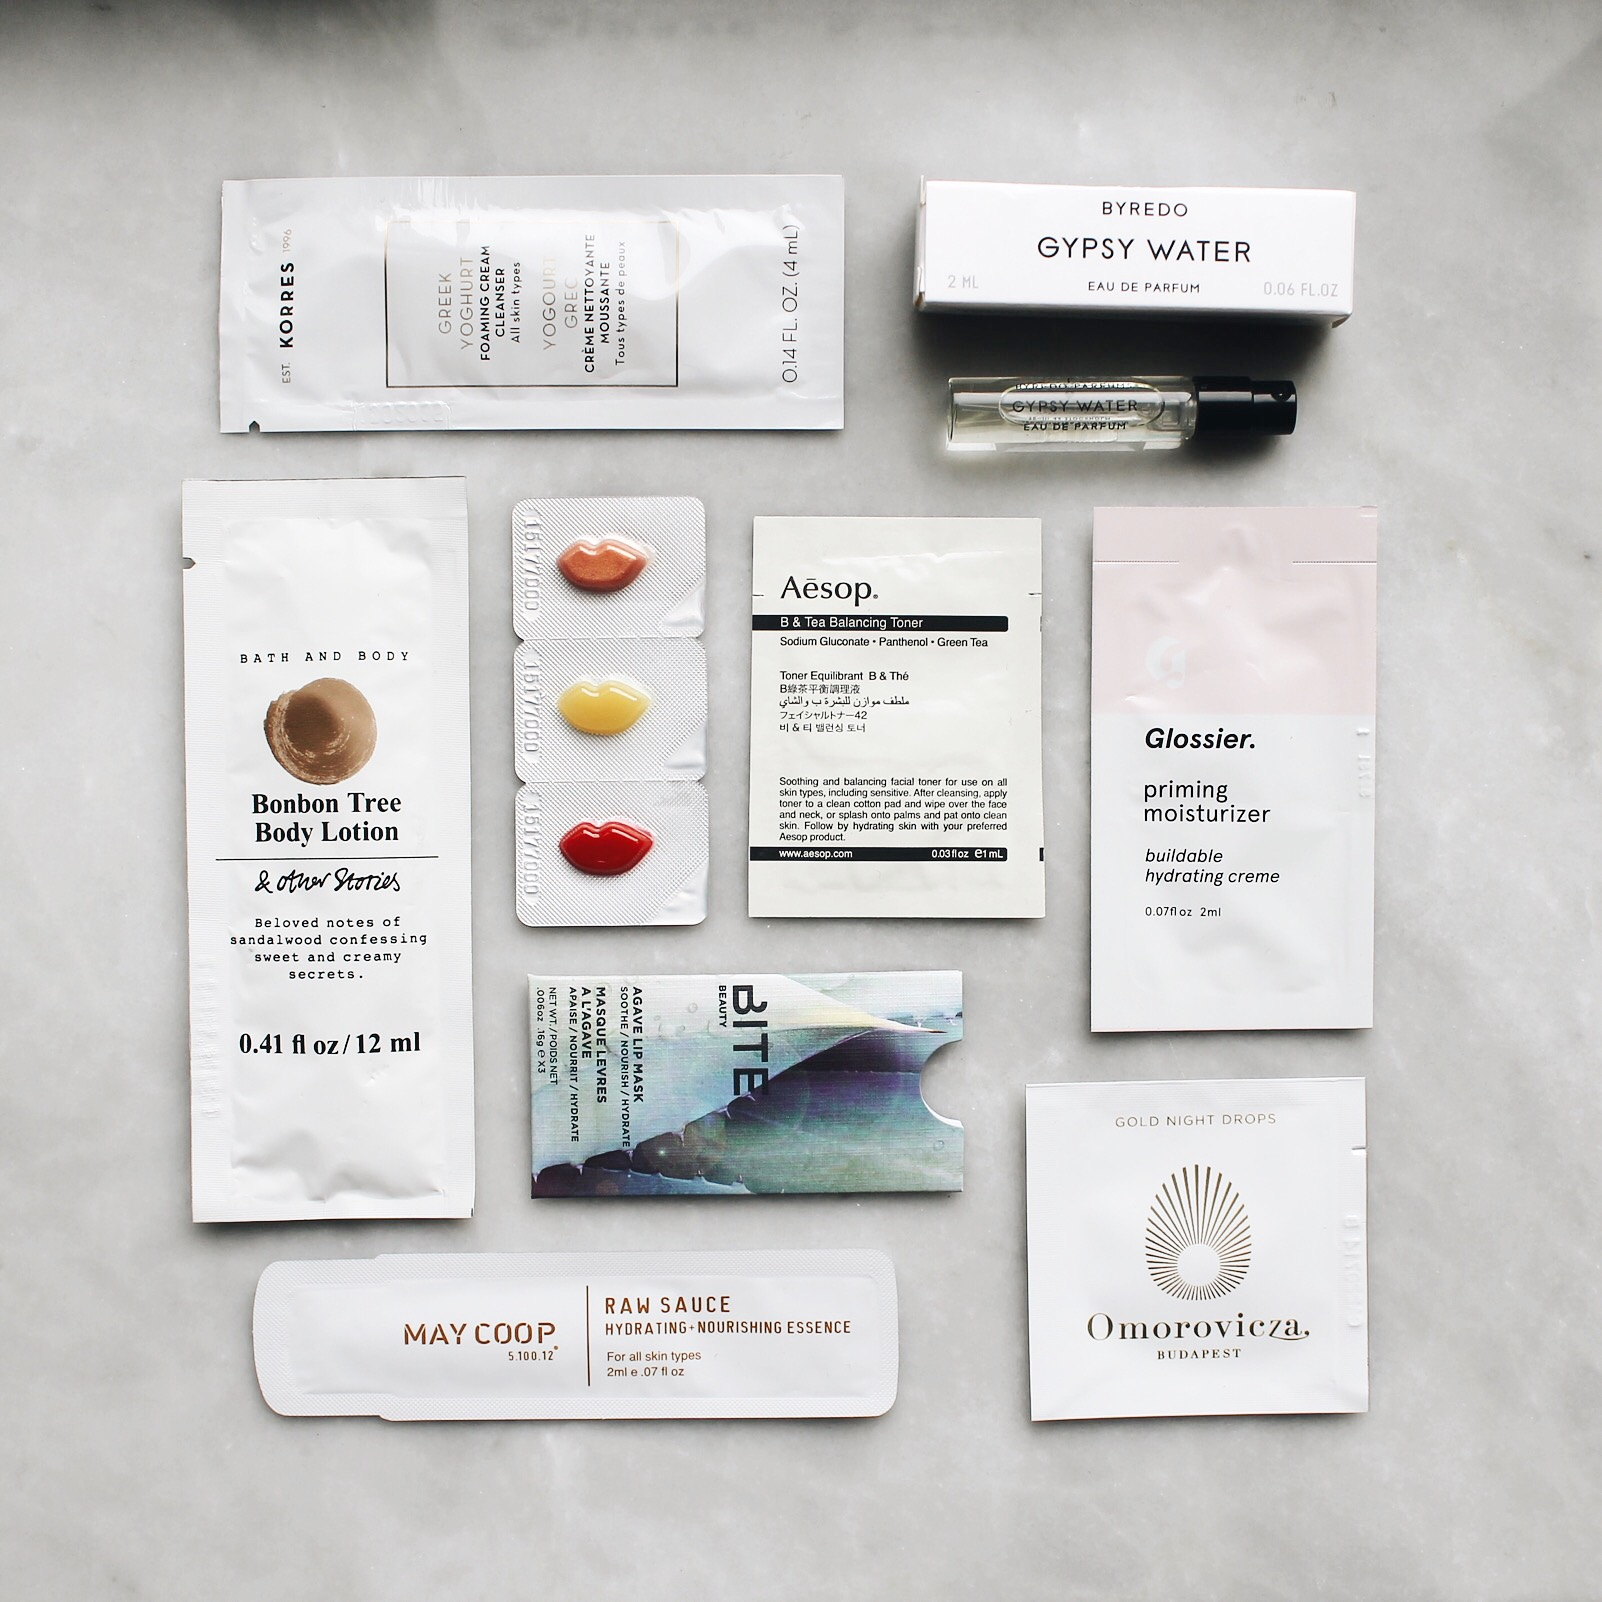 Beauty Samples With The Best Packaging, Glossier Samples, Bite Beauty Samples, Makeup Samples, Korres Samples, And Other Stores Samples, Omorovicza Samples, May Coop Samples, Aesop Samples, Byredo Samples